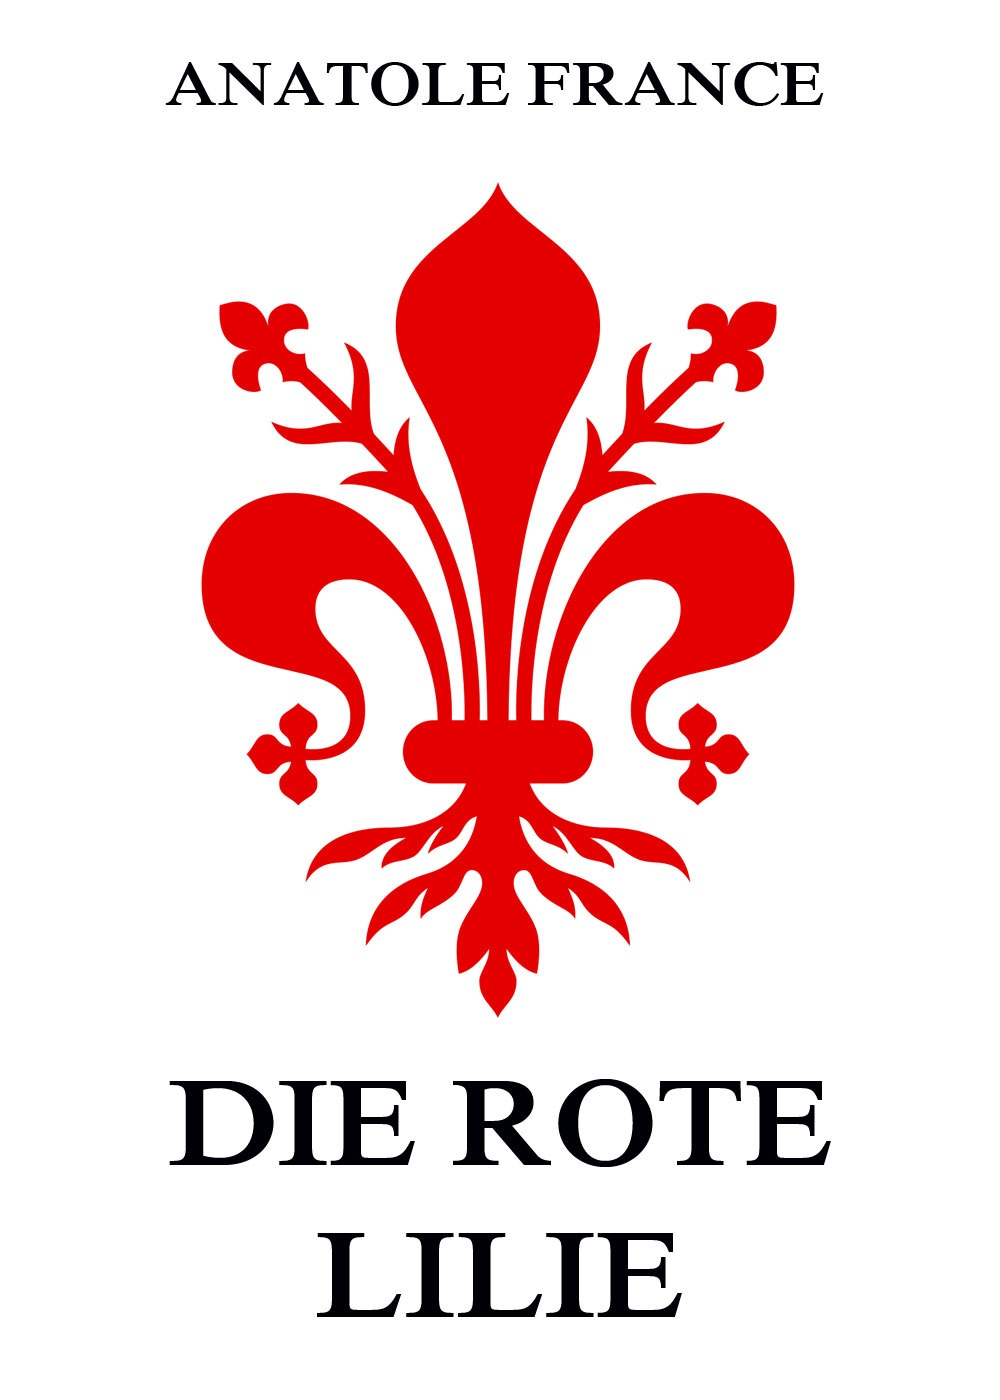 Anatole France Die rote Lilie